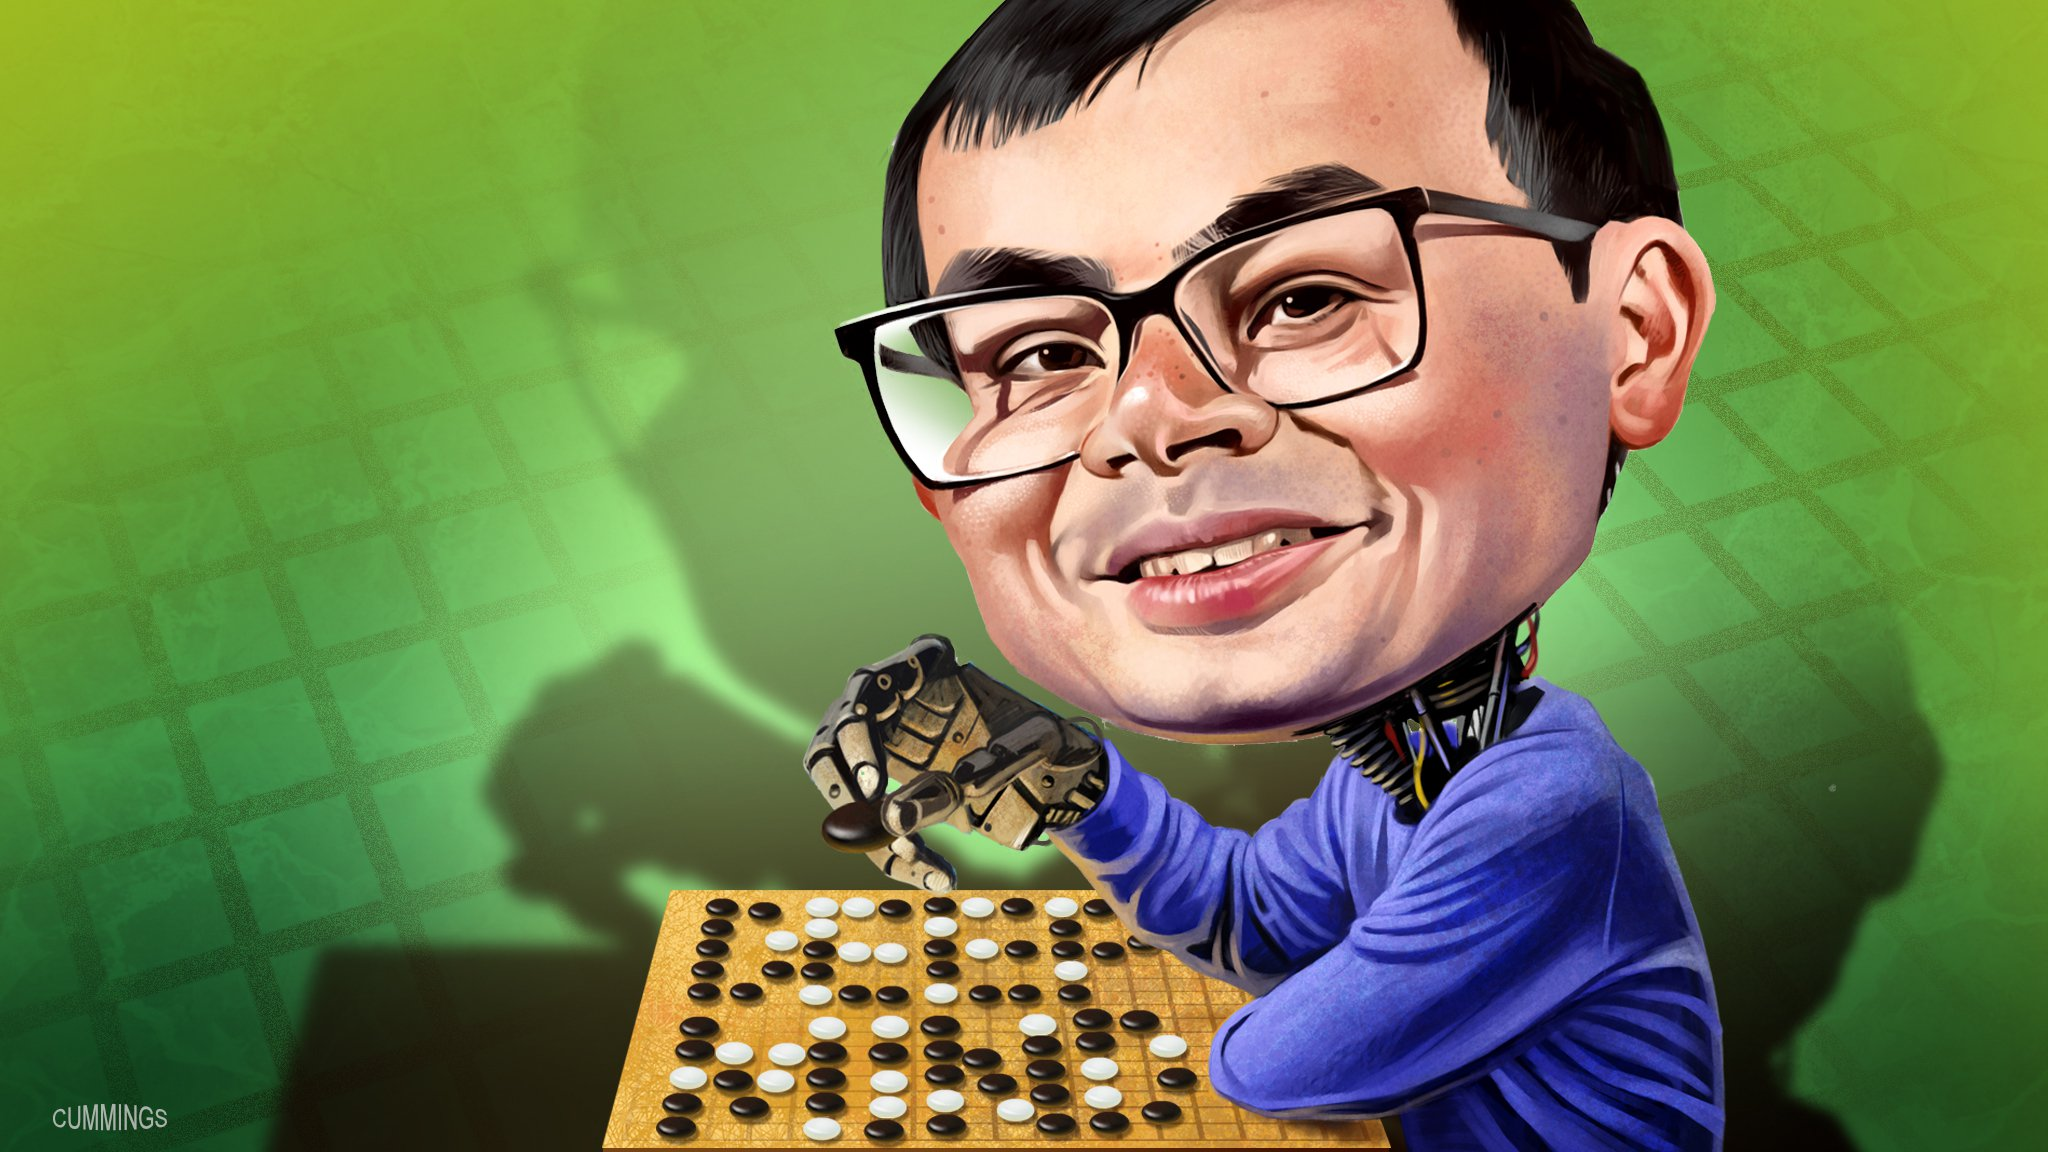 DeepMind and Google: the battle for control of artificial intelligence